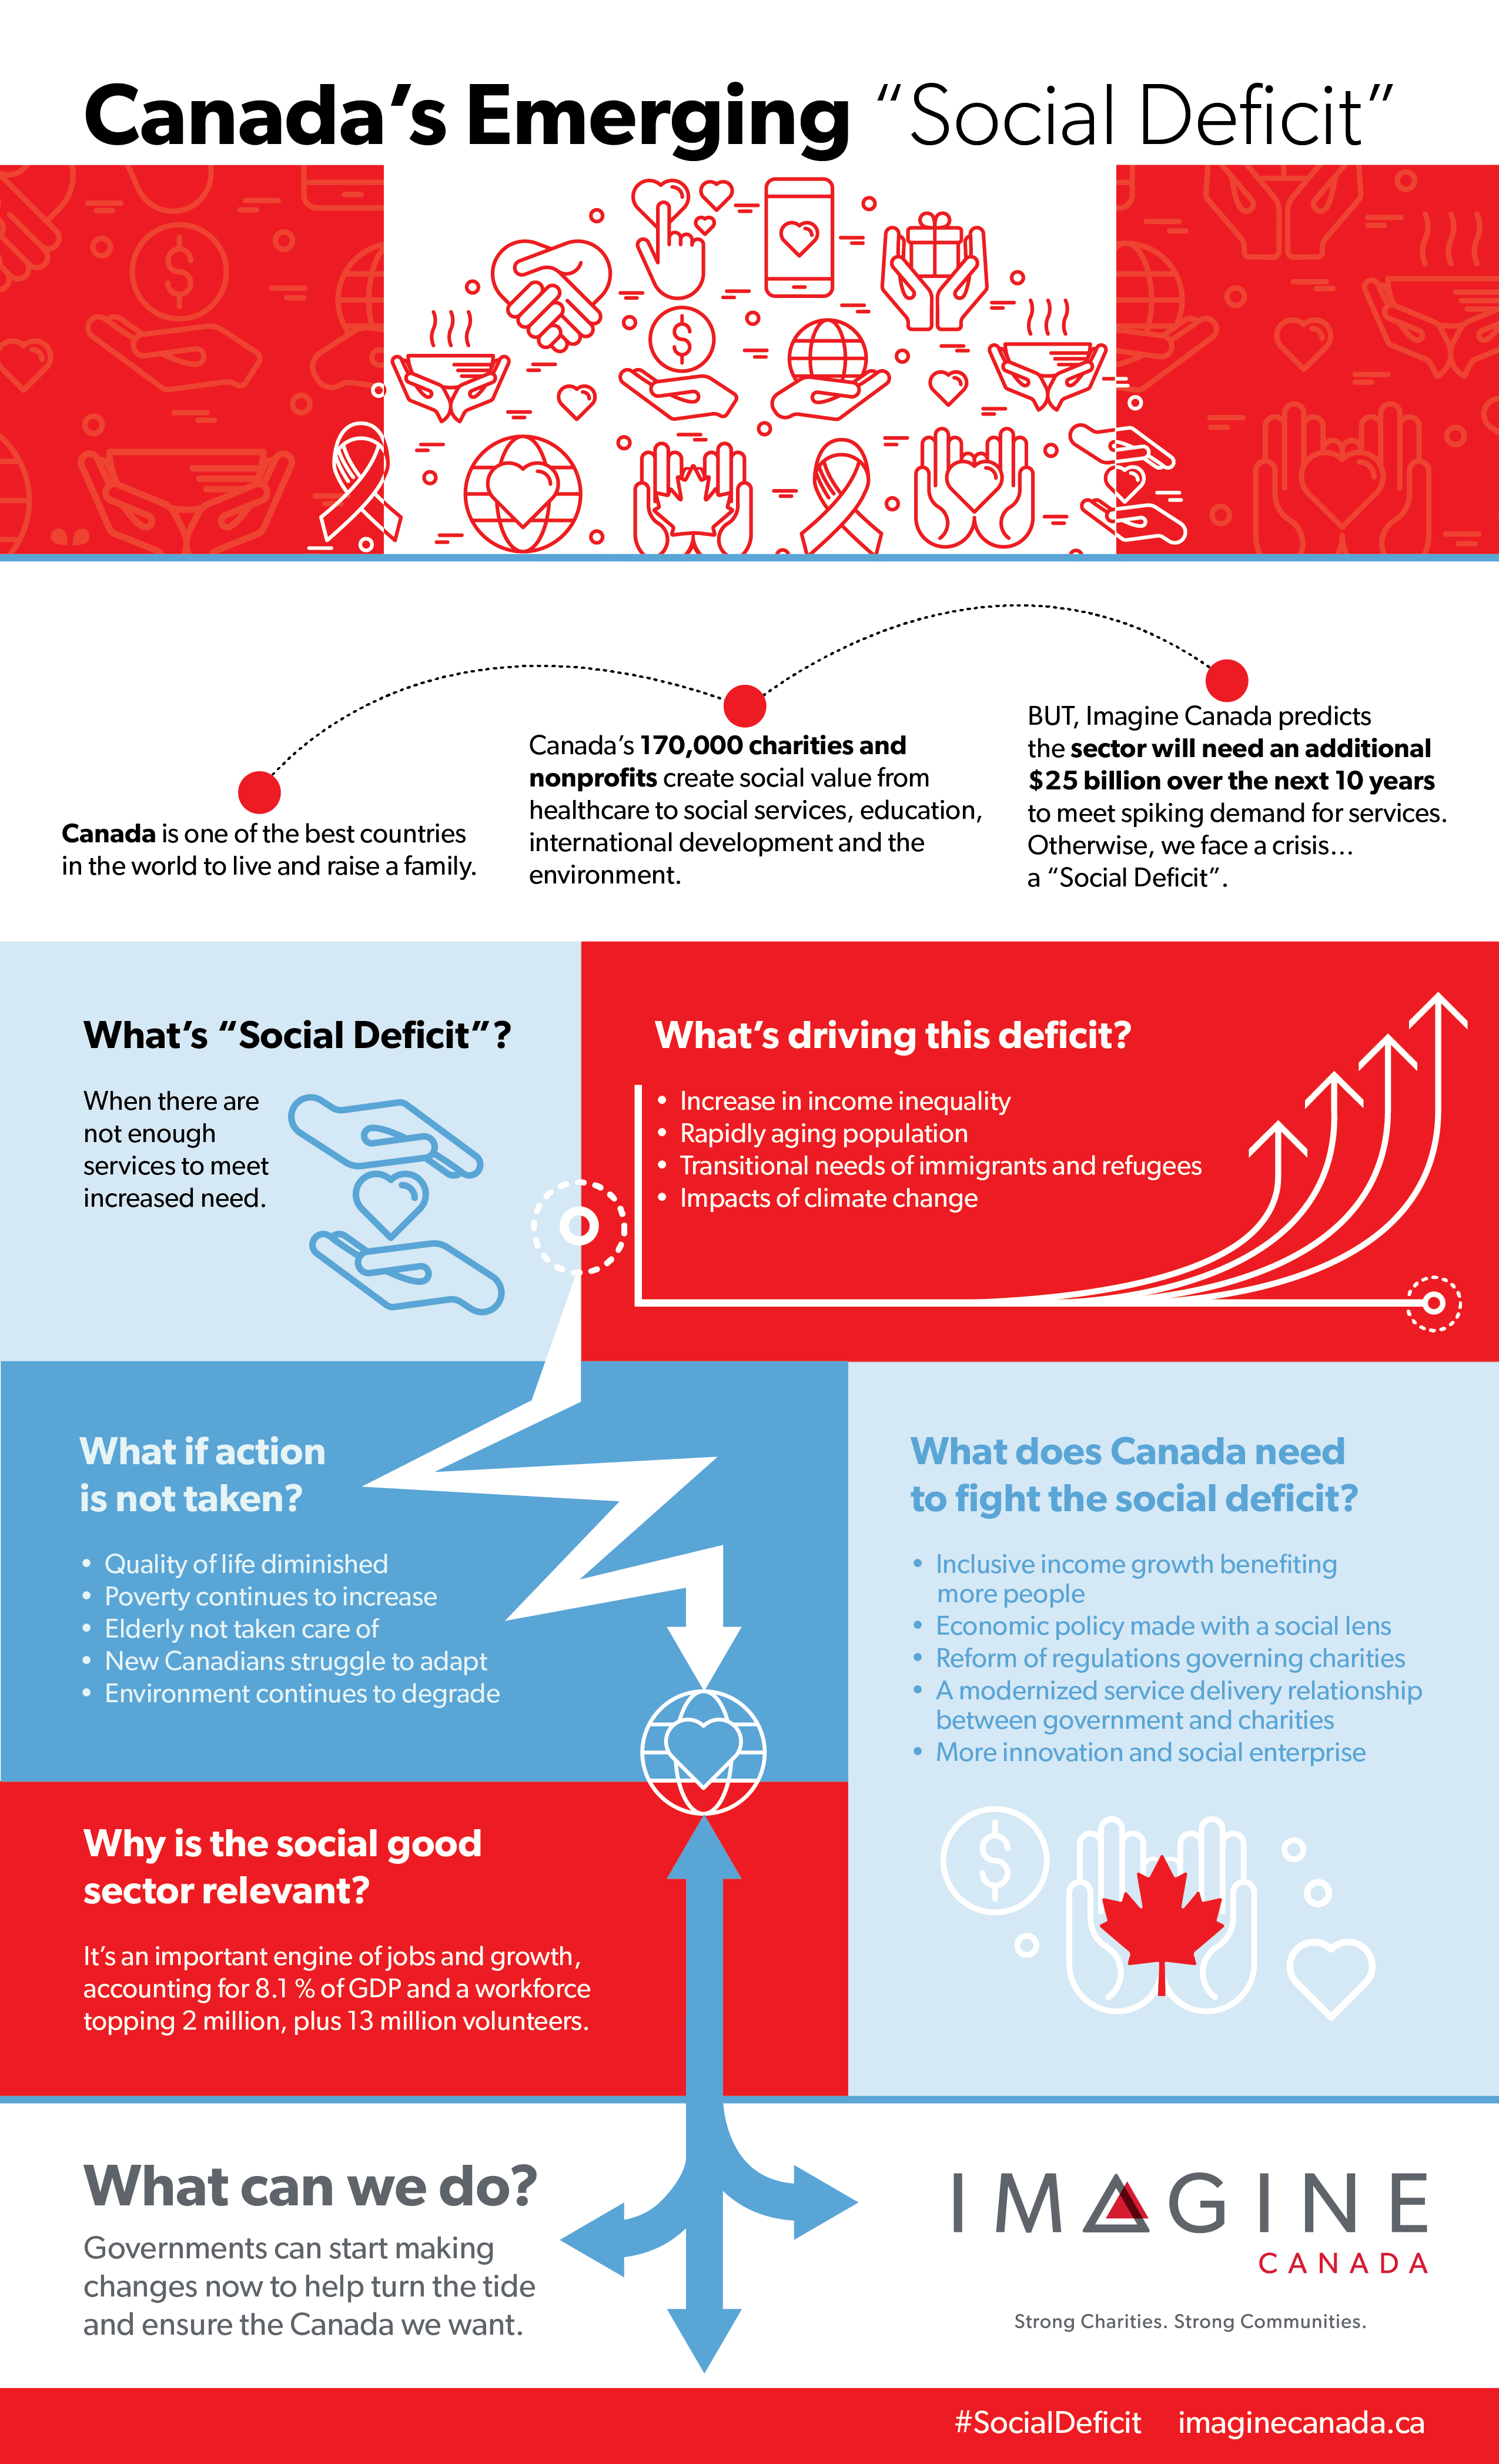 Canada's emerging social deficit infographic